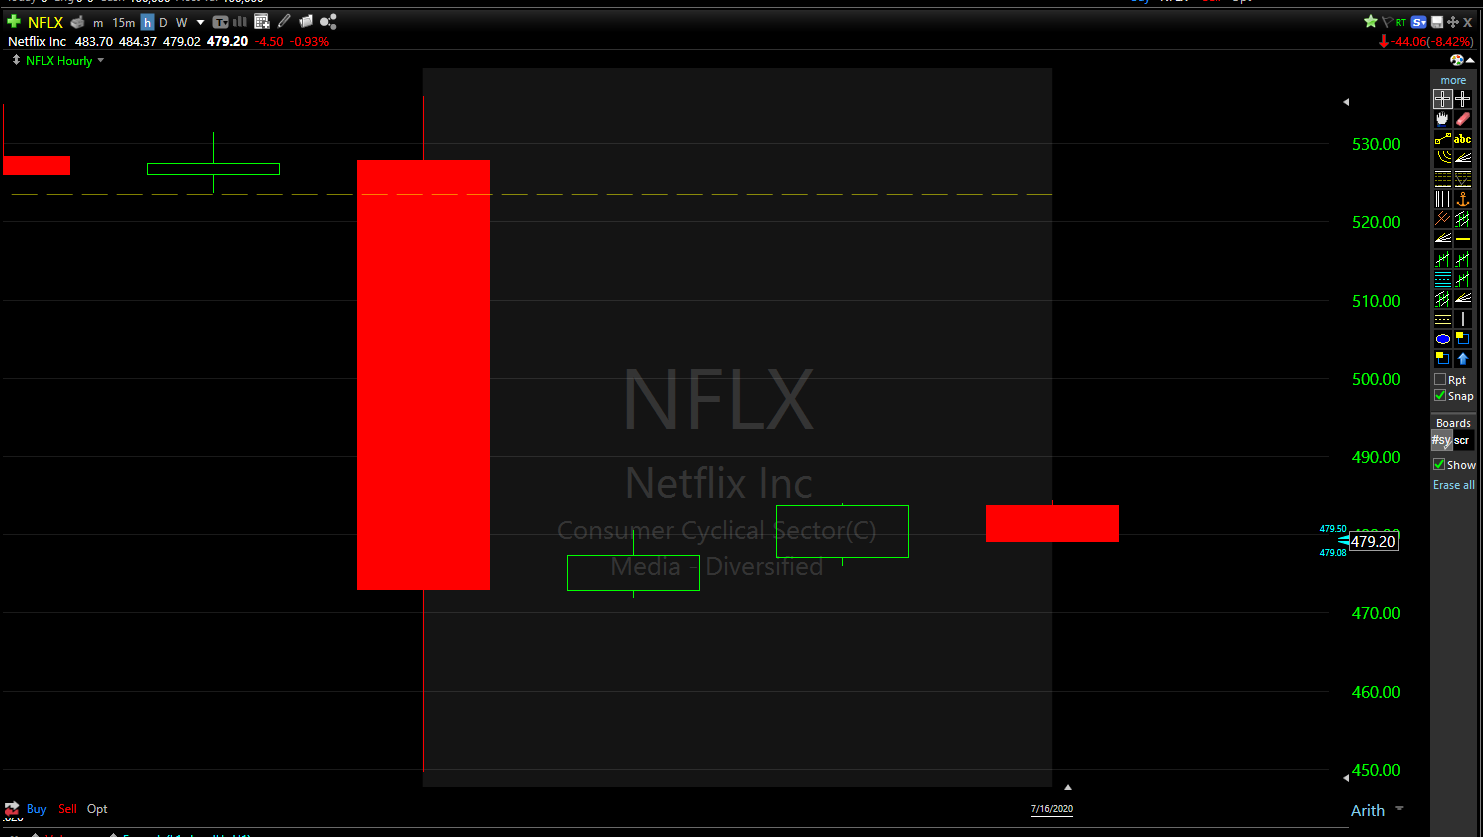 Netflix (NFLX) stock fell nearly 10% on the earnings release.